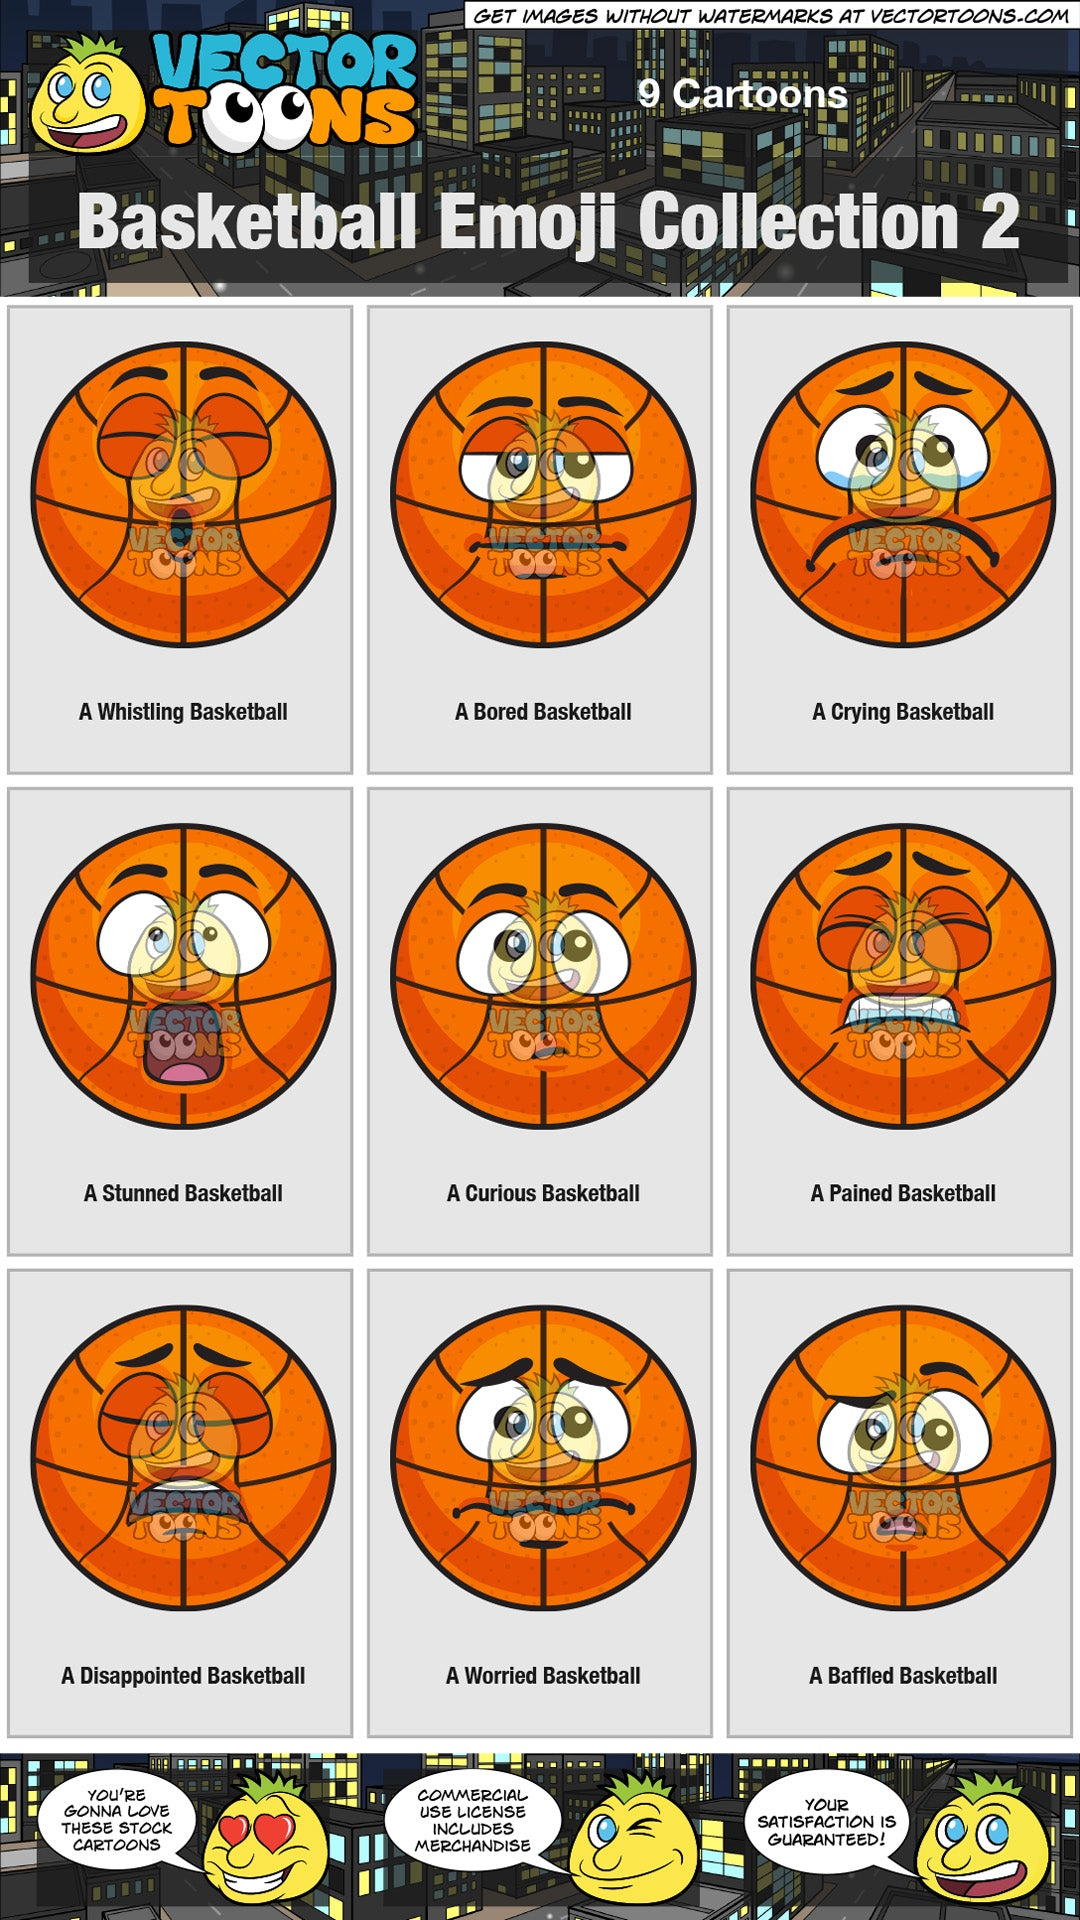 Basketball Emoji Collection 2